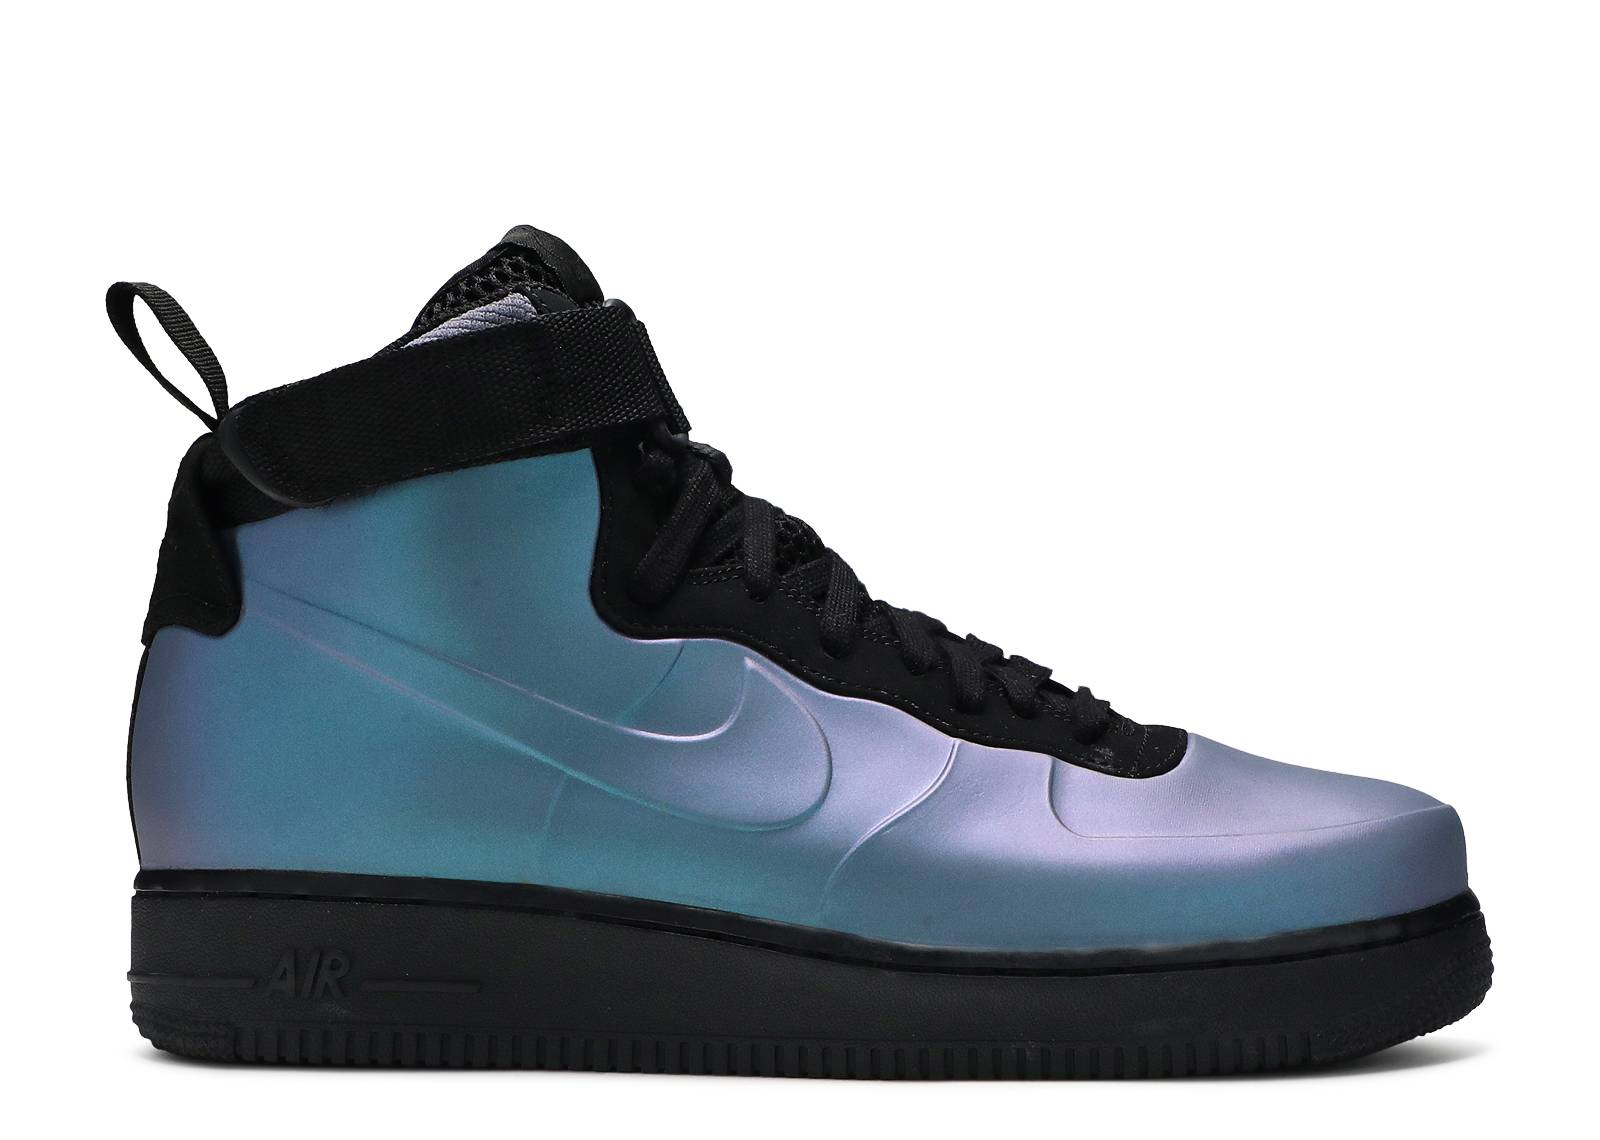 8c0319bd072 nike. air foamposite pro.  205. + · air force 1 foamposite